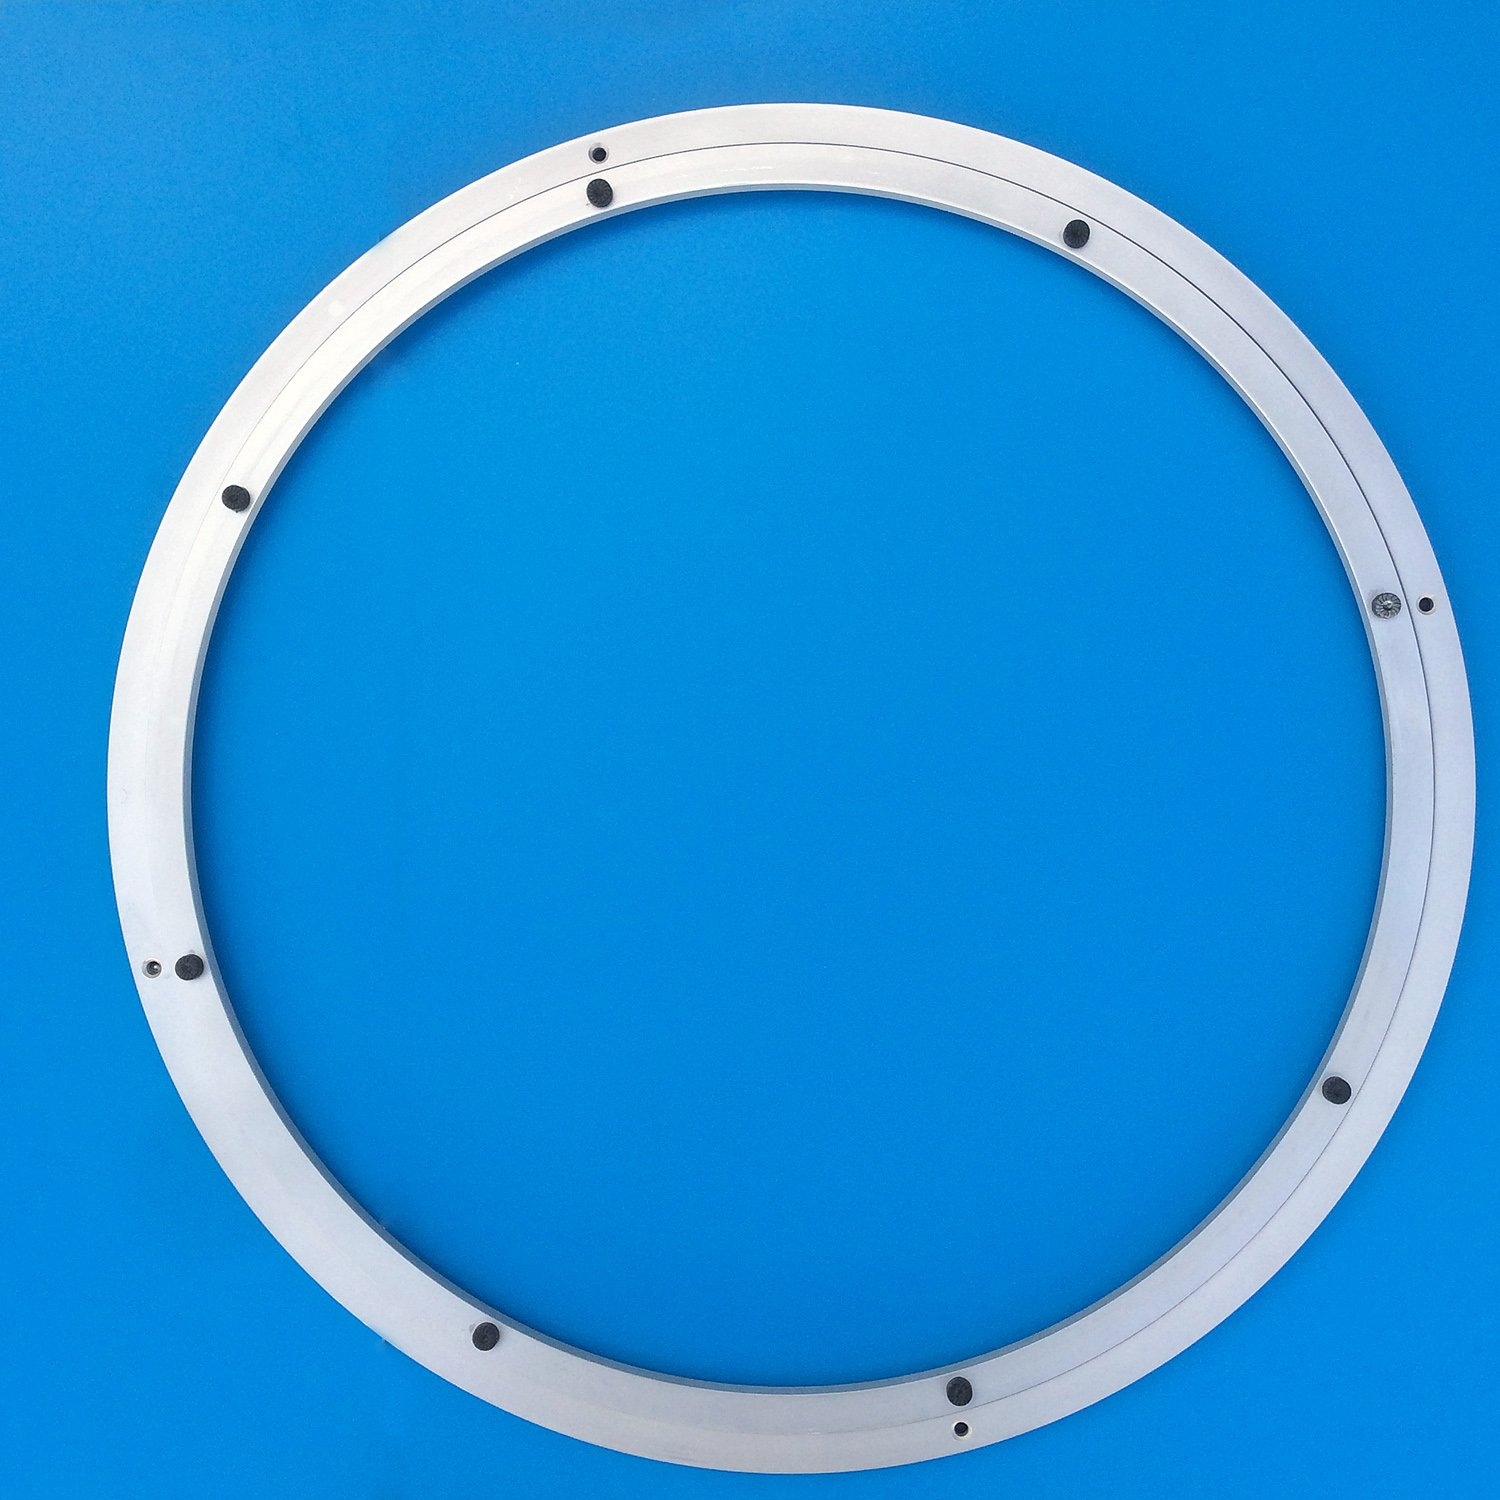 Heavy-Duty Aluminum Lazy Susan Ring/Turntable with Single-Row Ball Bearings for Heavy Loads, 31.5-Inch